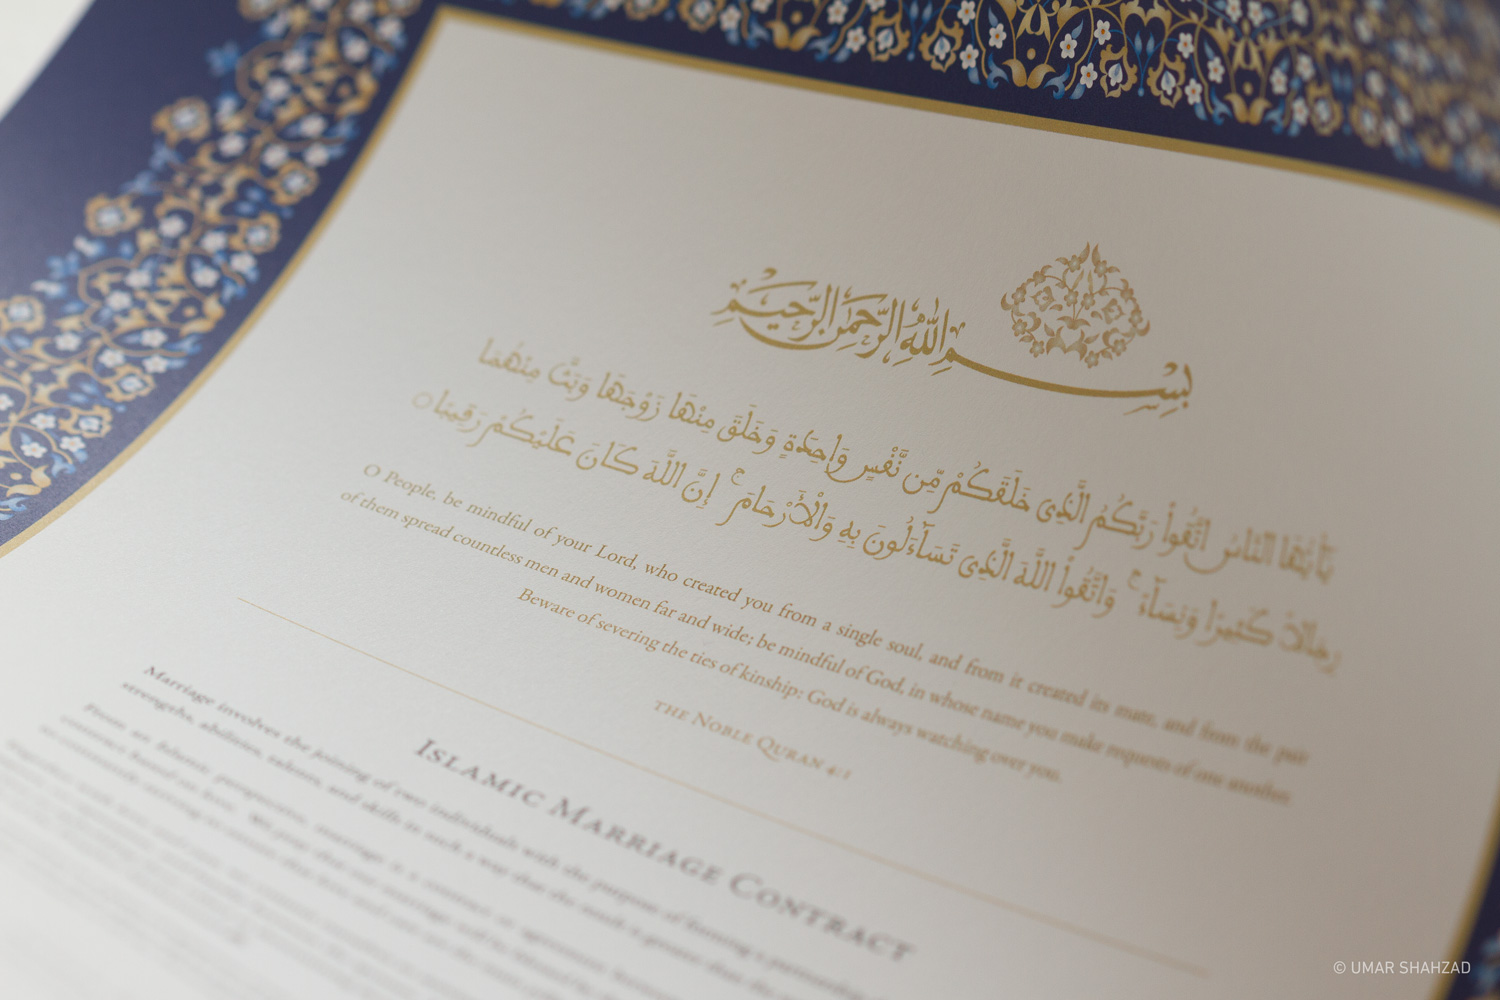 Islamic Marriage Certificate \u2014 Umar Shahzad RGD - marriage contract